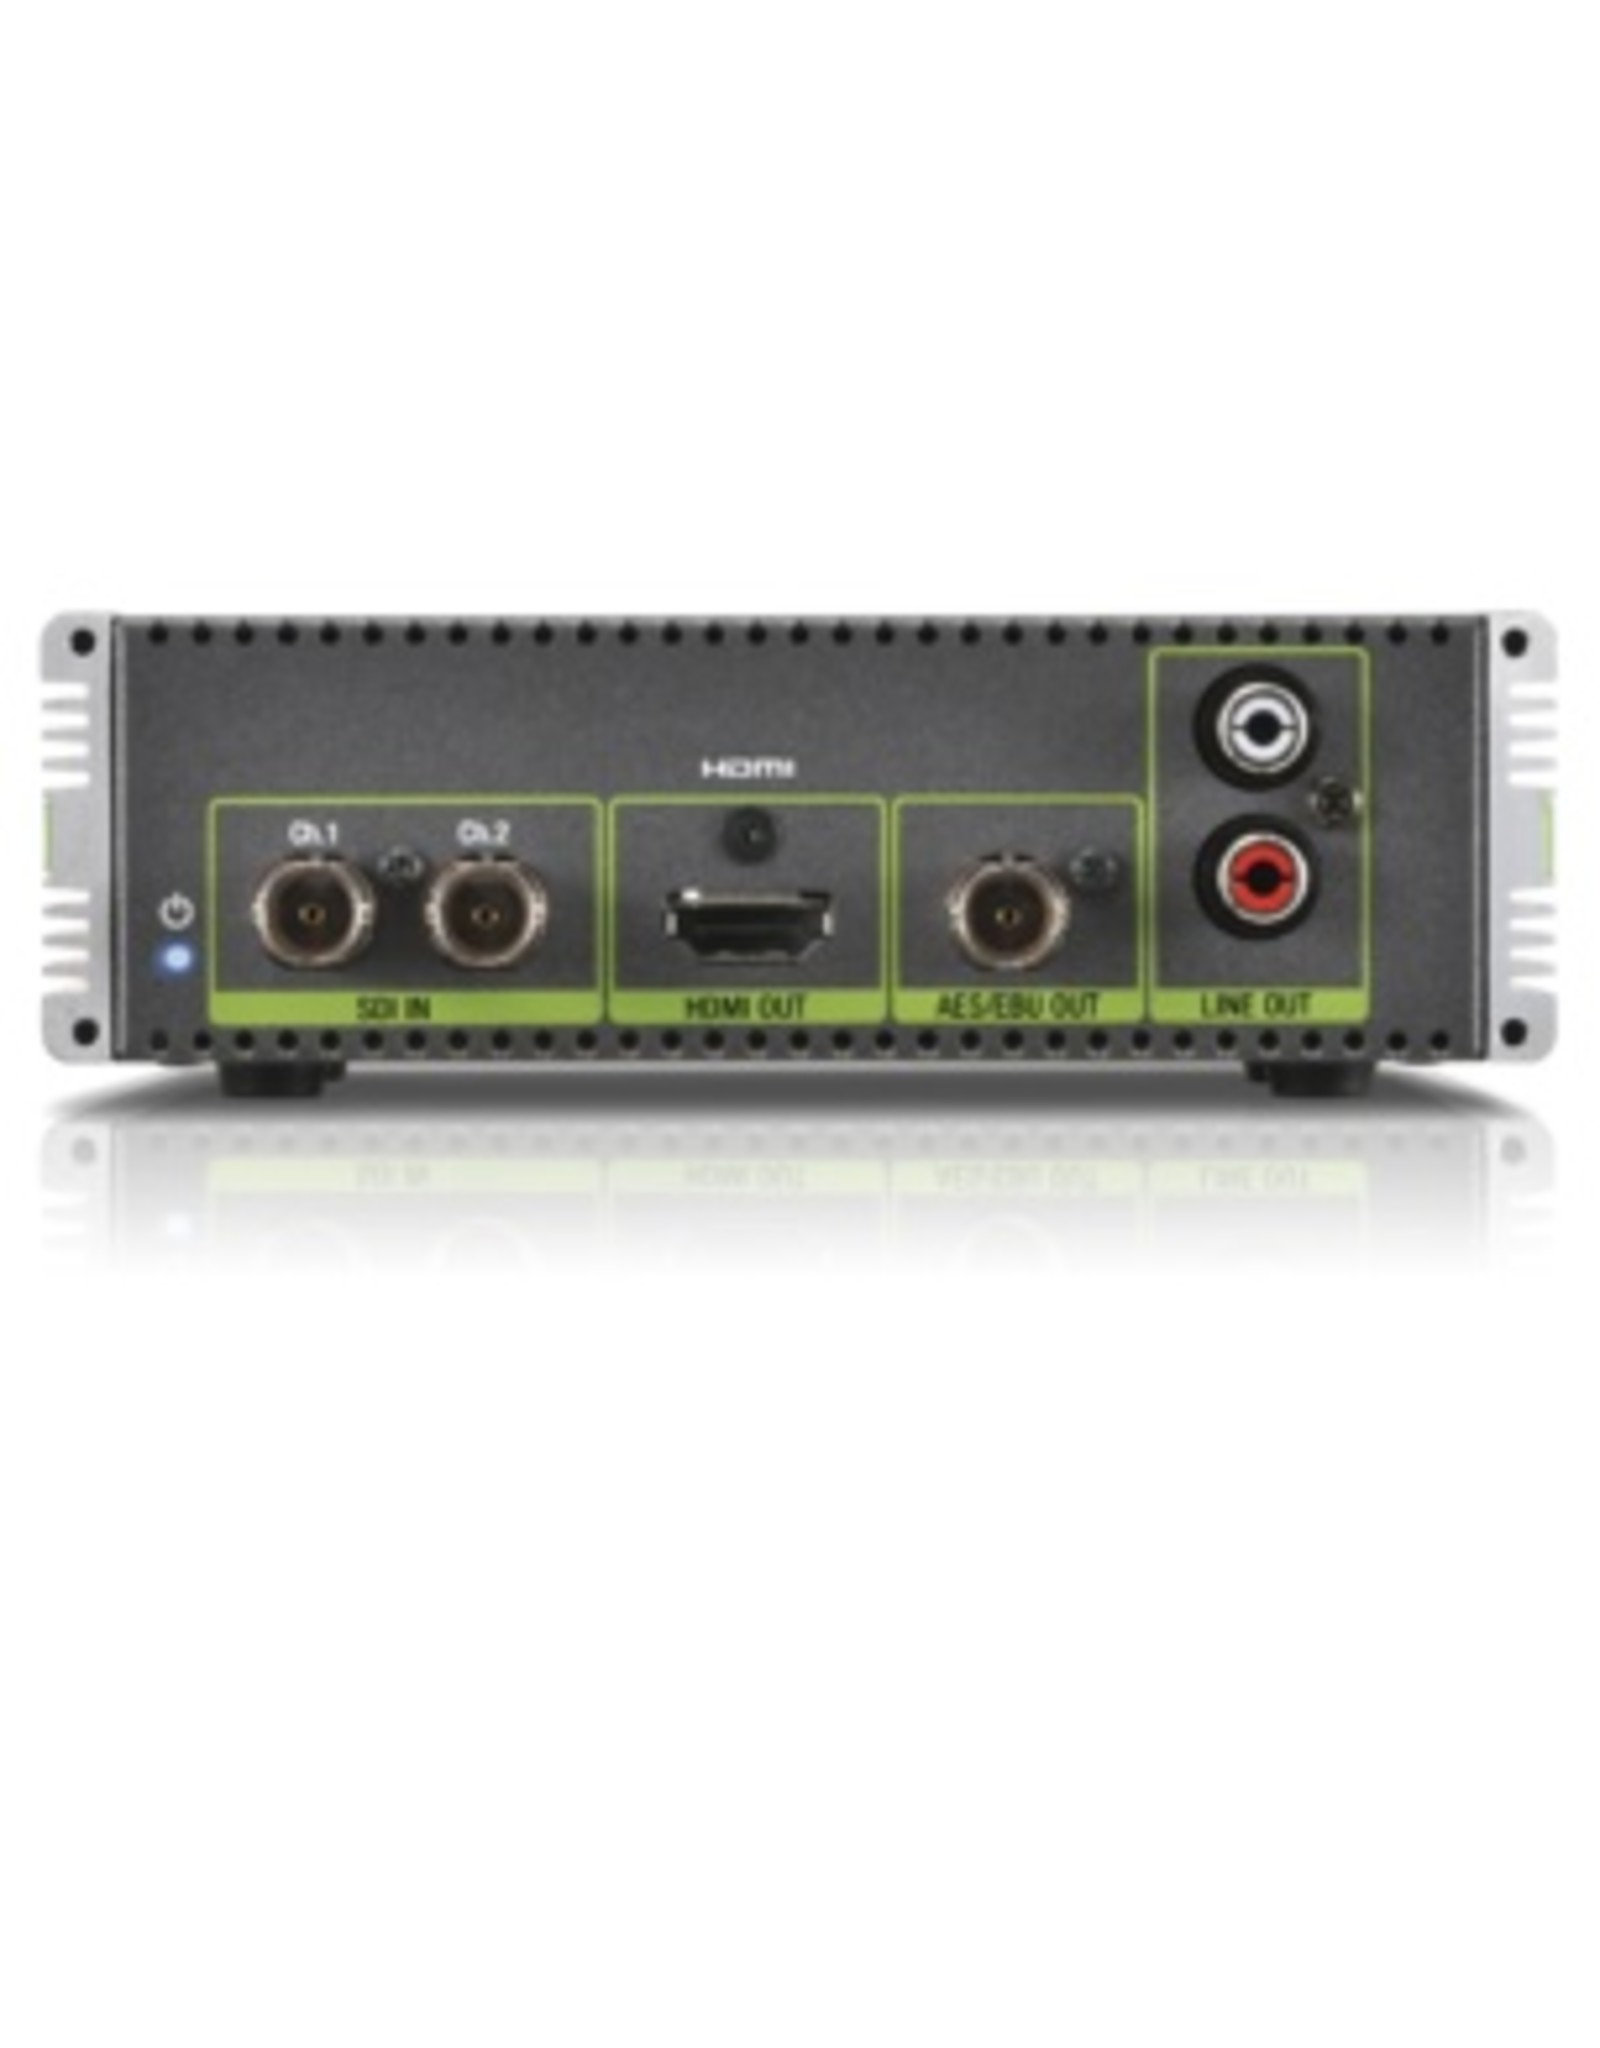 Grass Valley ADVC-G3 Converter